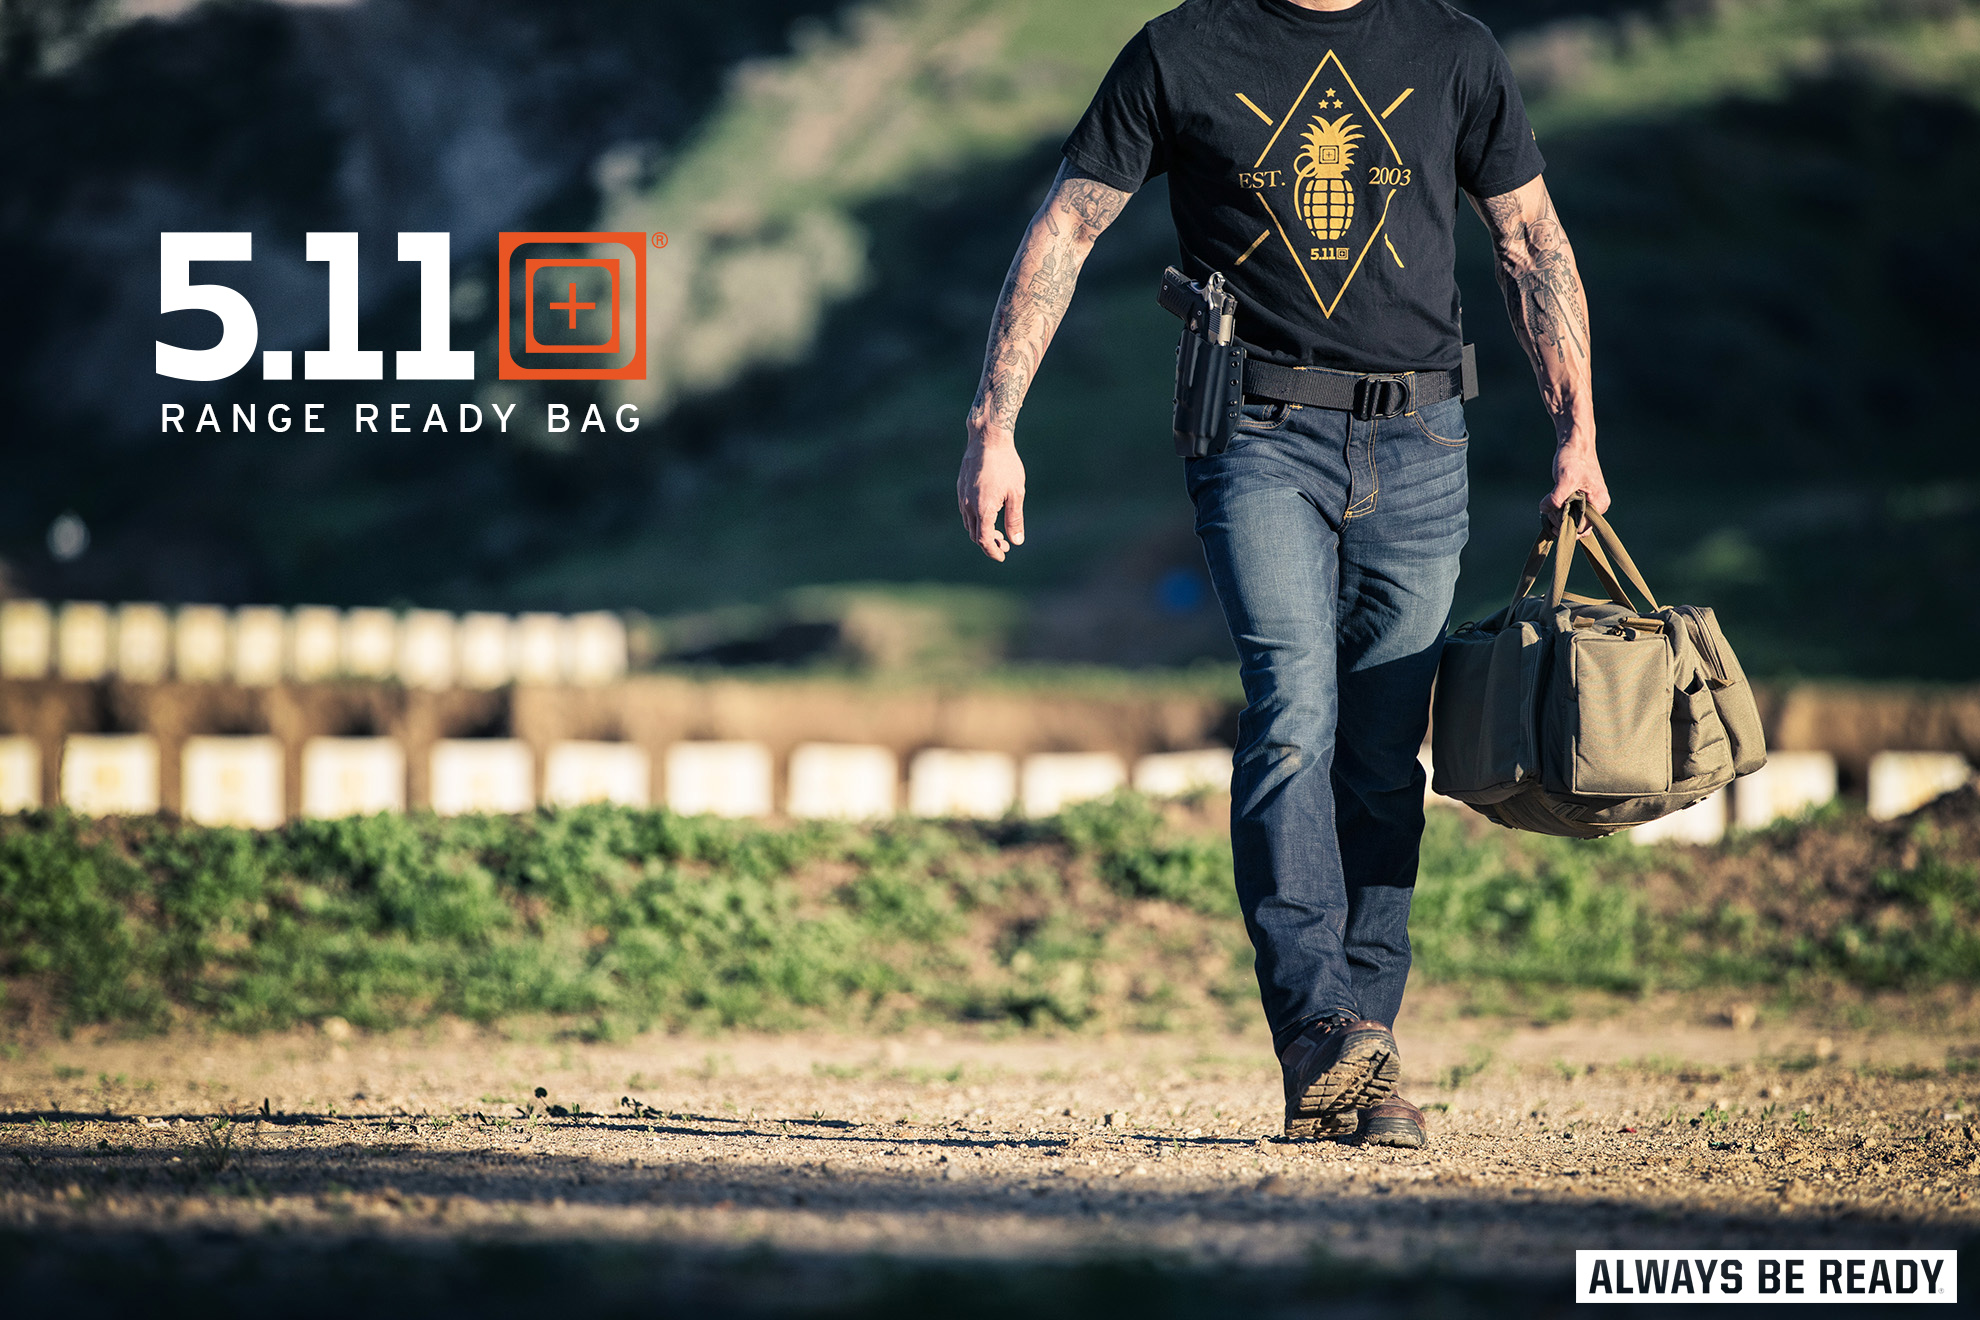 511 range day range ready bag for all you tactical equipment